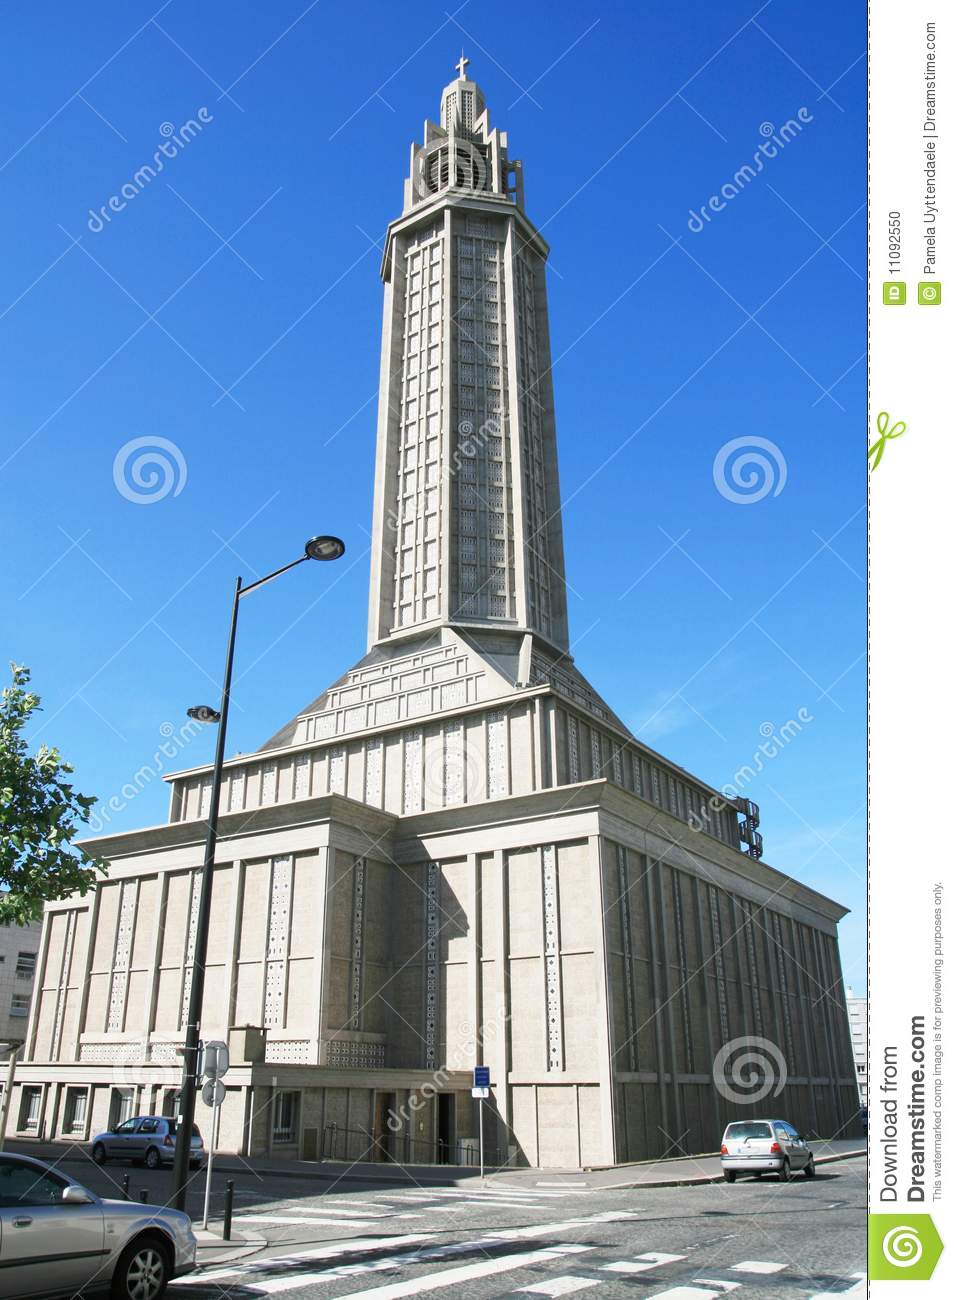 st joseph 39 s church in le havre normandy france stock photo image of havre historic 11092550. Black Bedroom Furniture Sets. Home Design Ideas